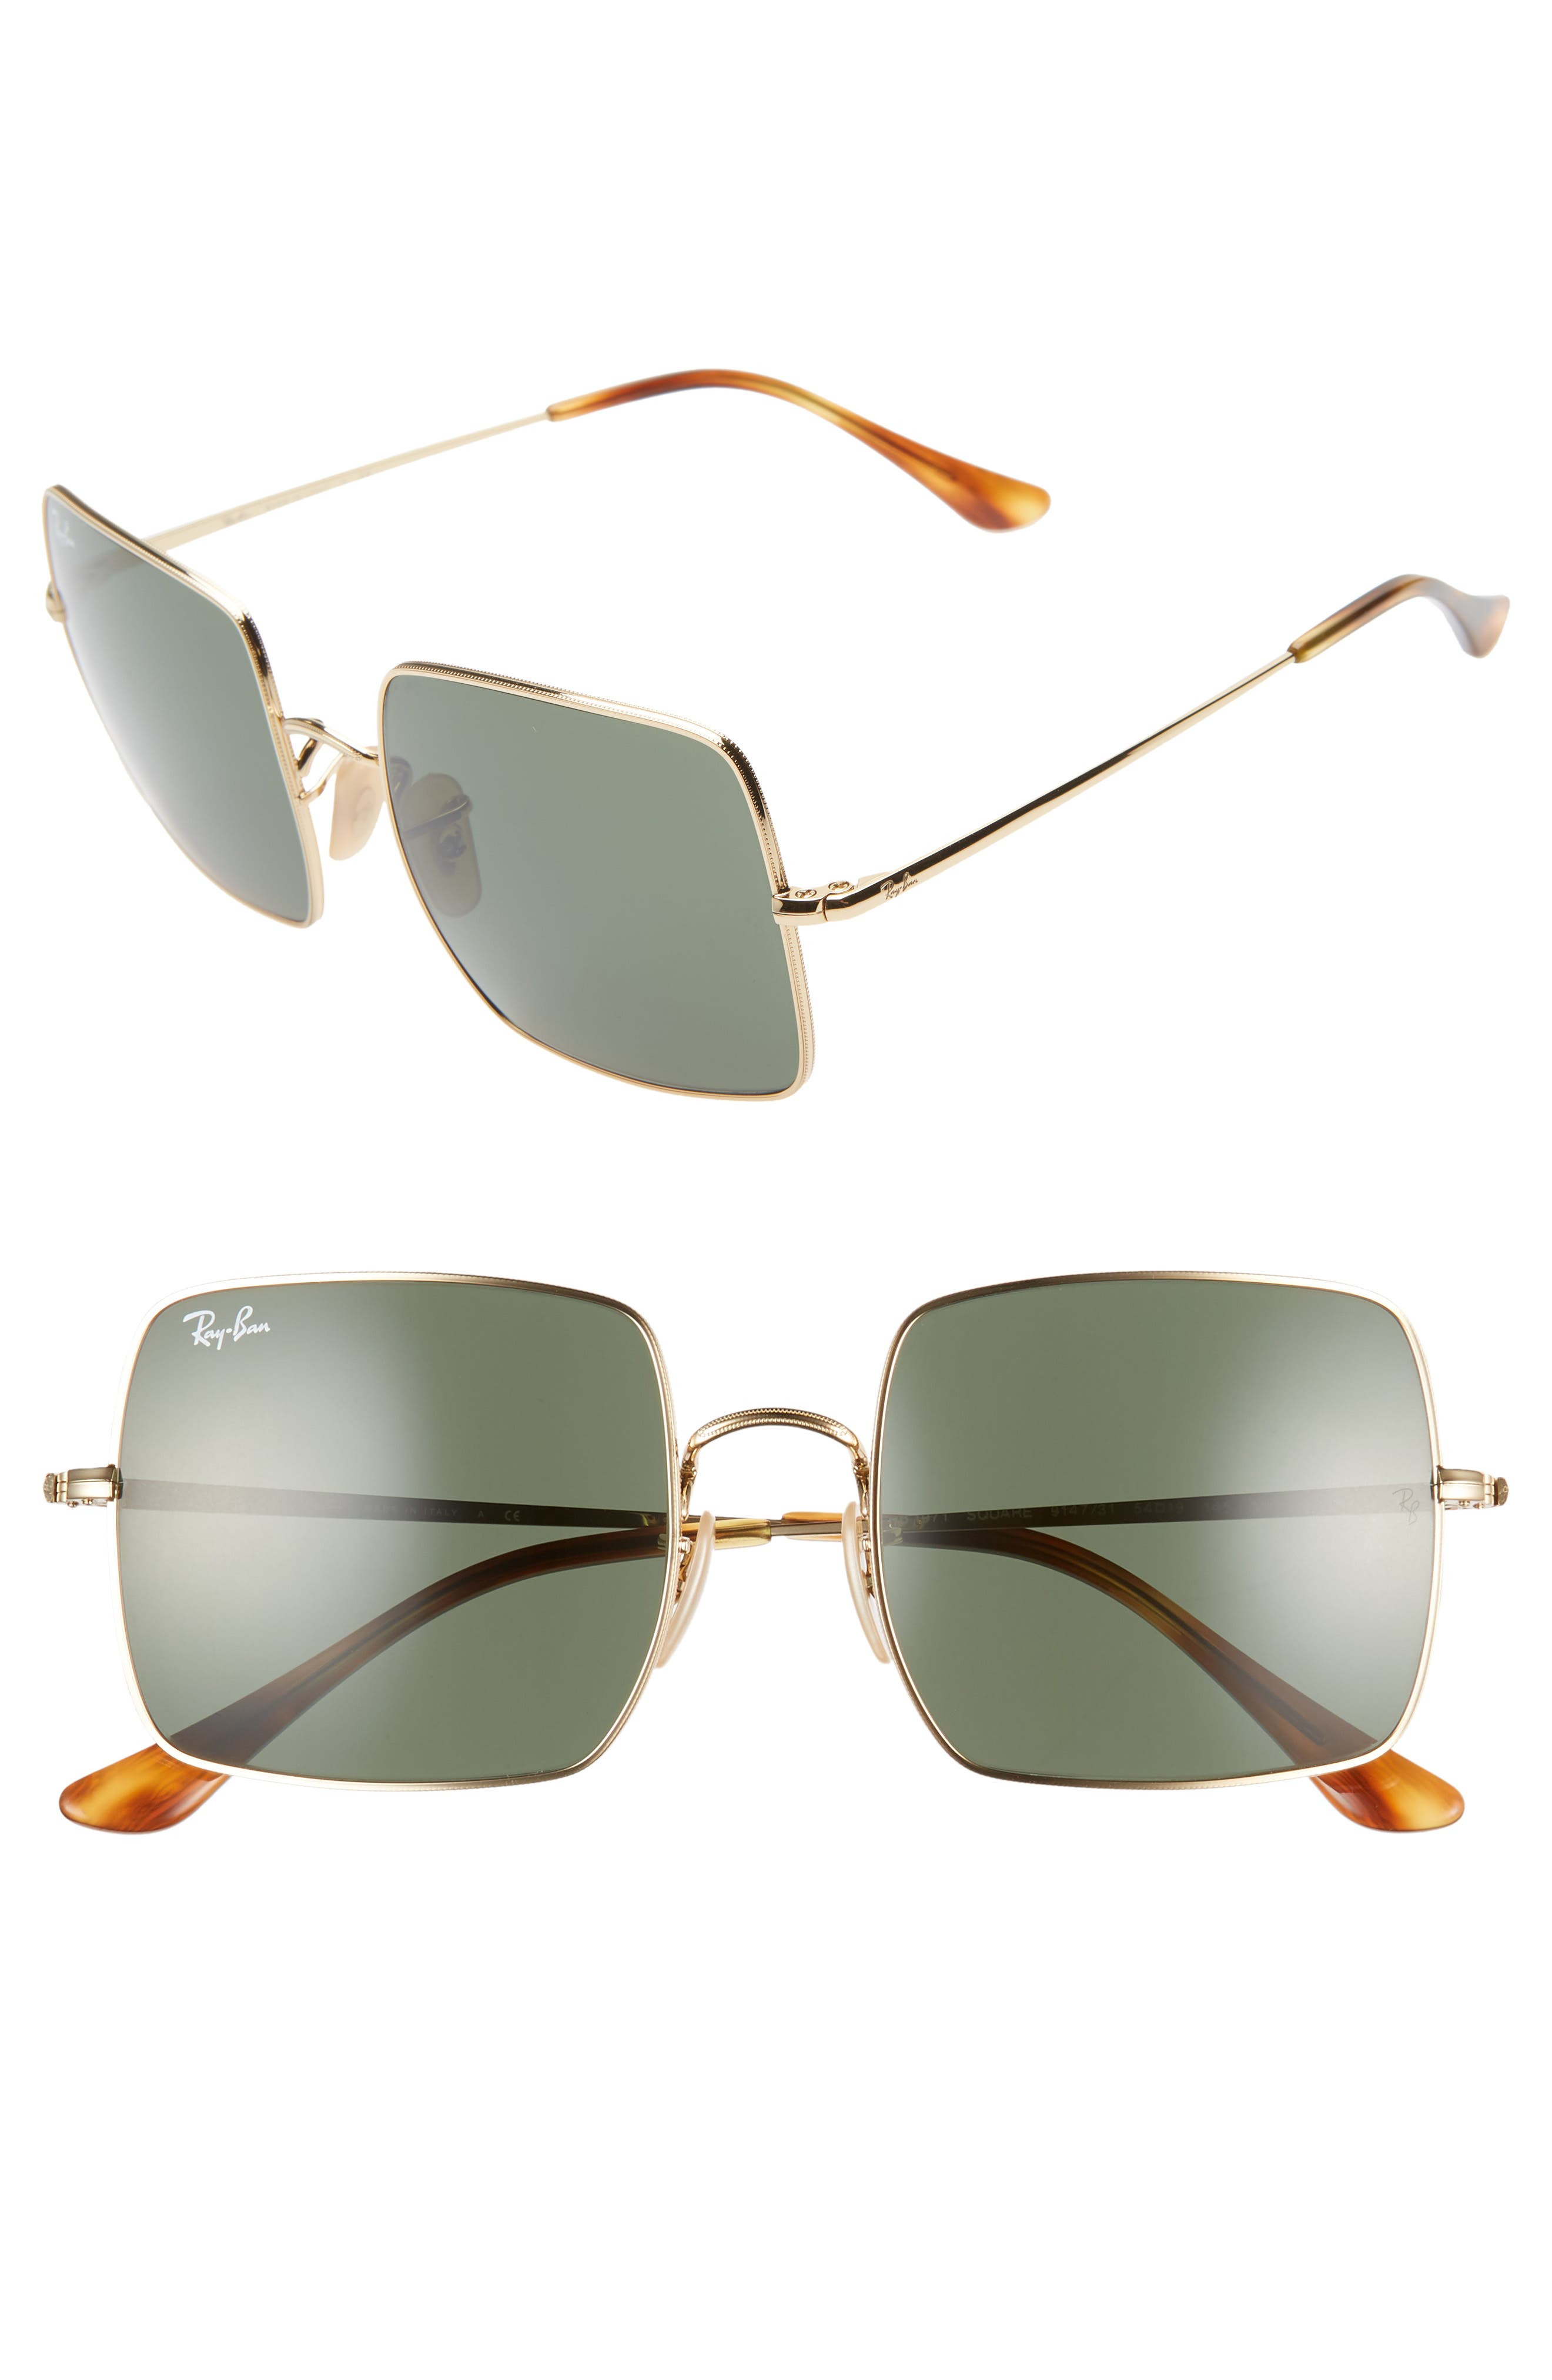 Ray-Ban 5m Square Sunglasses - Gold/ Grey Solid